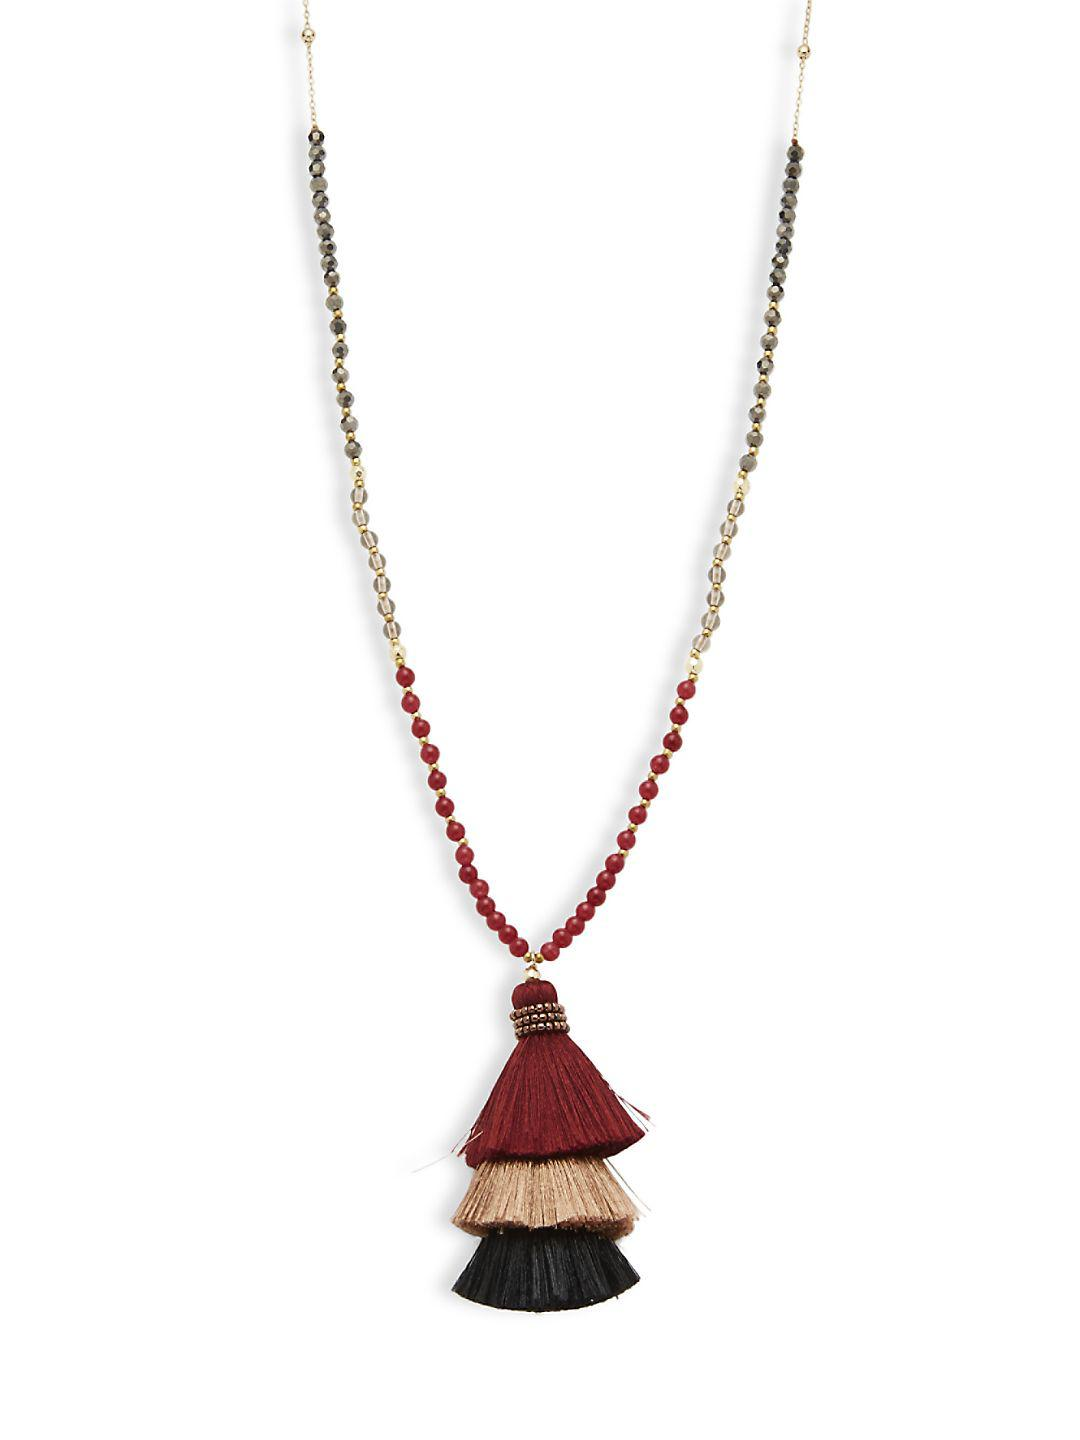 Panacea Peach Stone Beaded Necklace w/ Ivory Tassel zwcVH